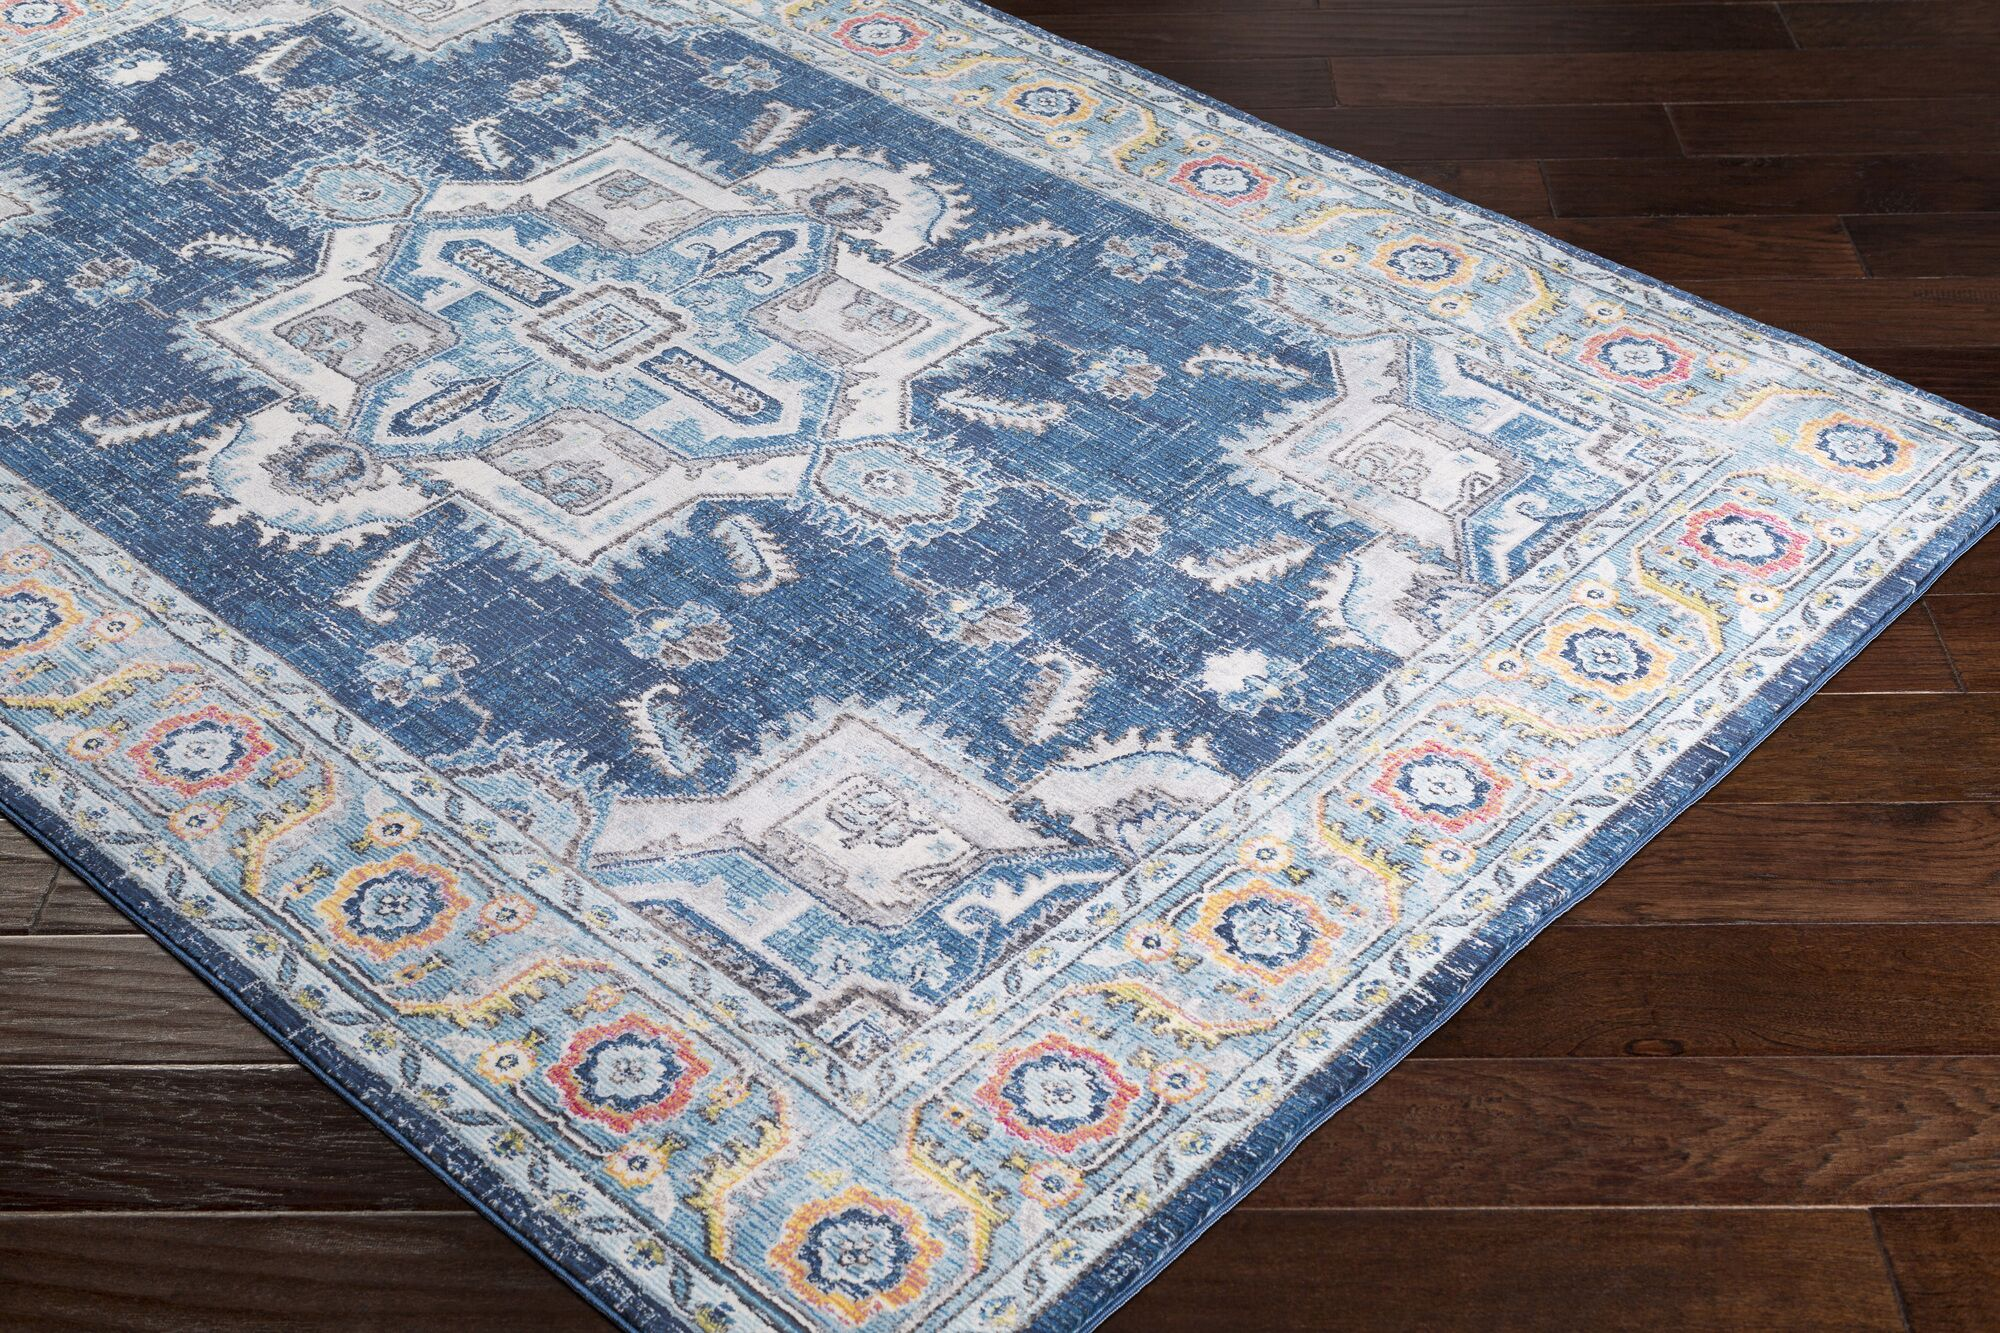 Tillamook Silk Distressed Floral Sky Blue/Gray Area Rug Rug Size: Rectangle 7'10